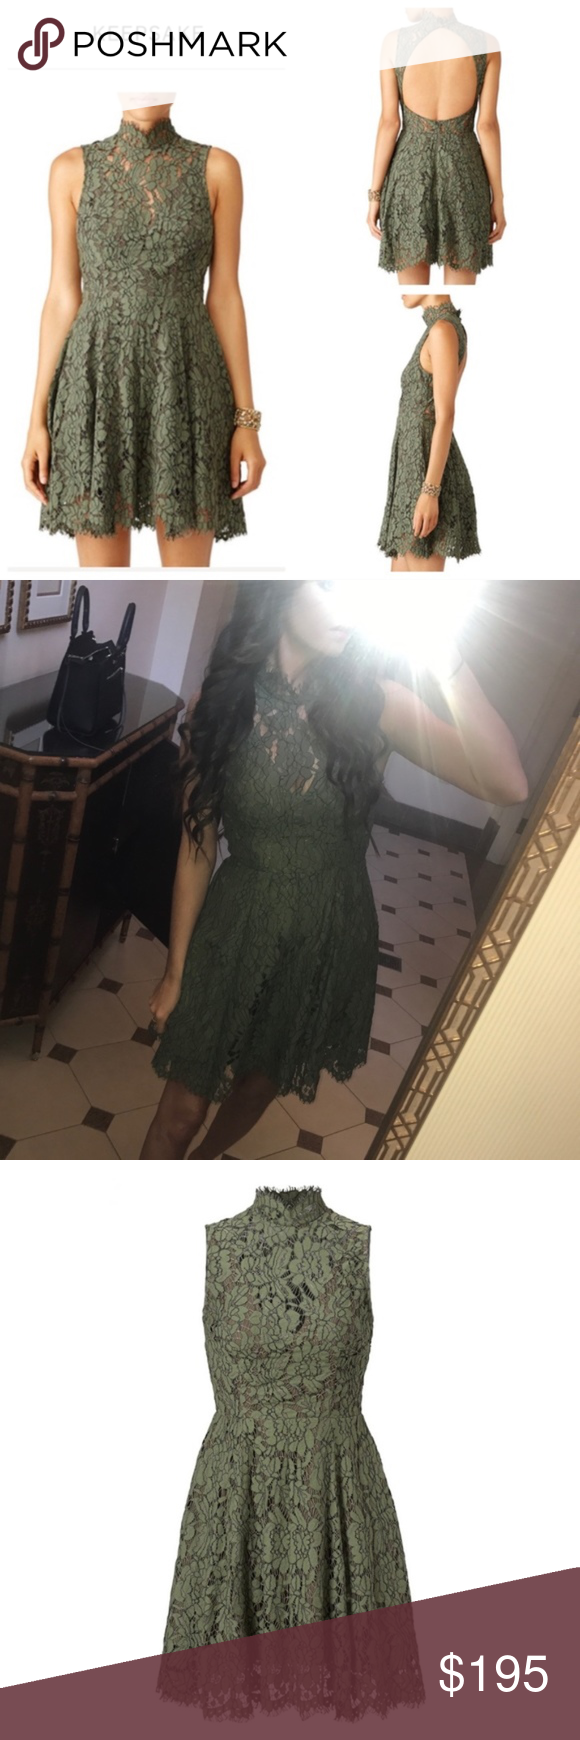 Nwt keepsake the label olive green lace dress nwt in my